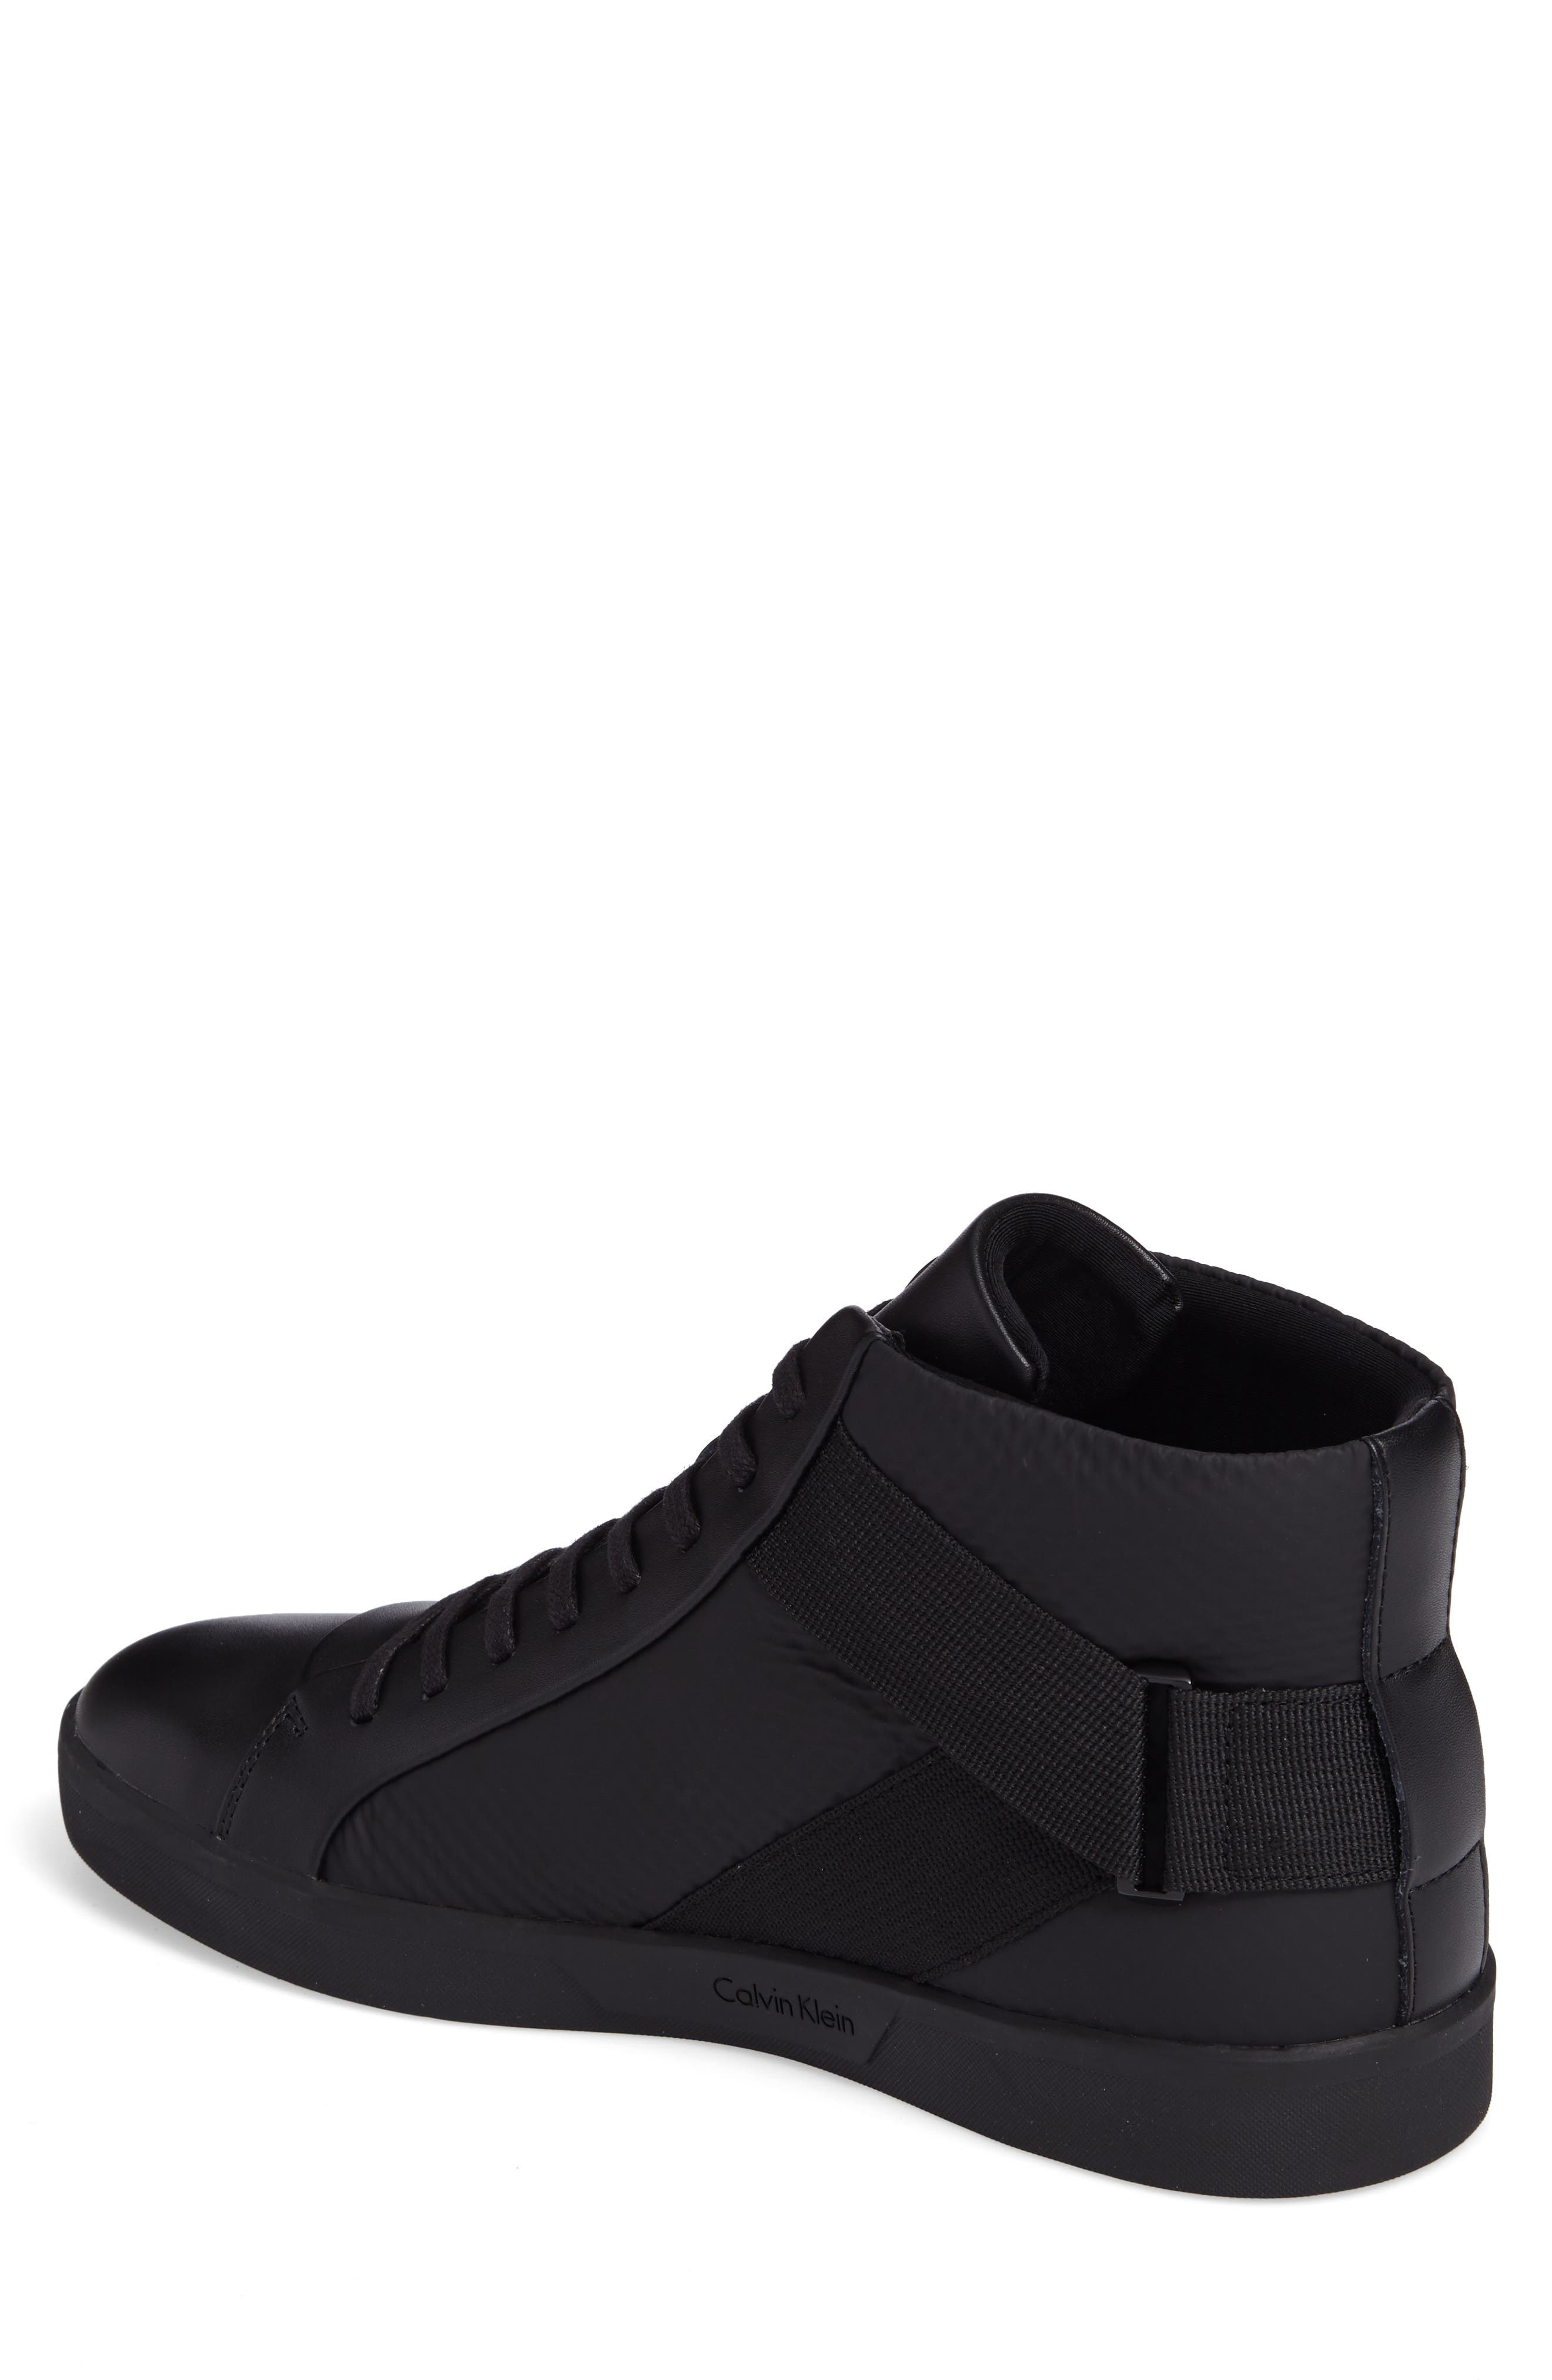 Alternate Image 2  - Calvin Klein Irvin Sneaker (Men)